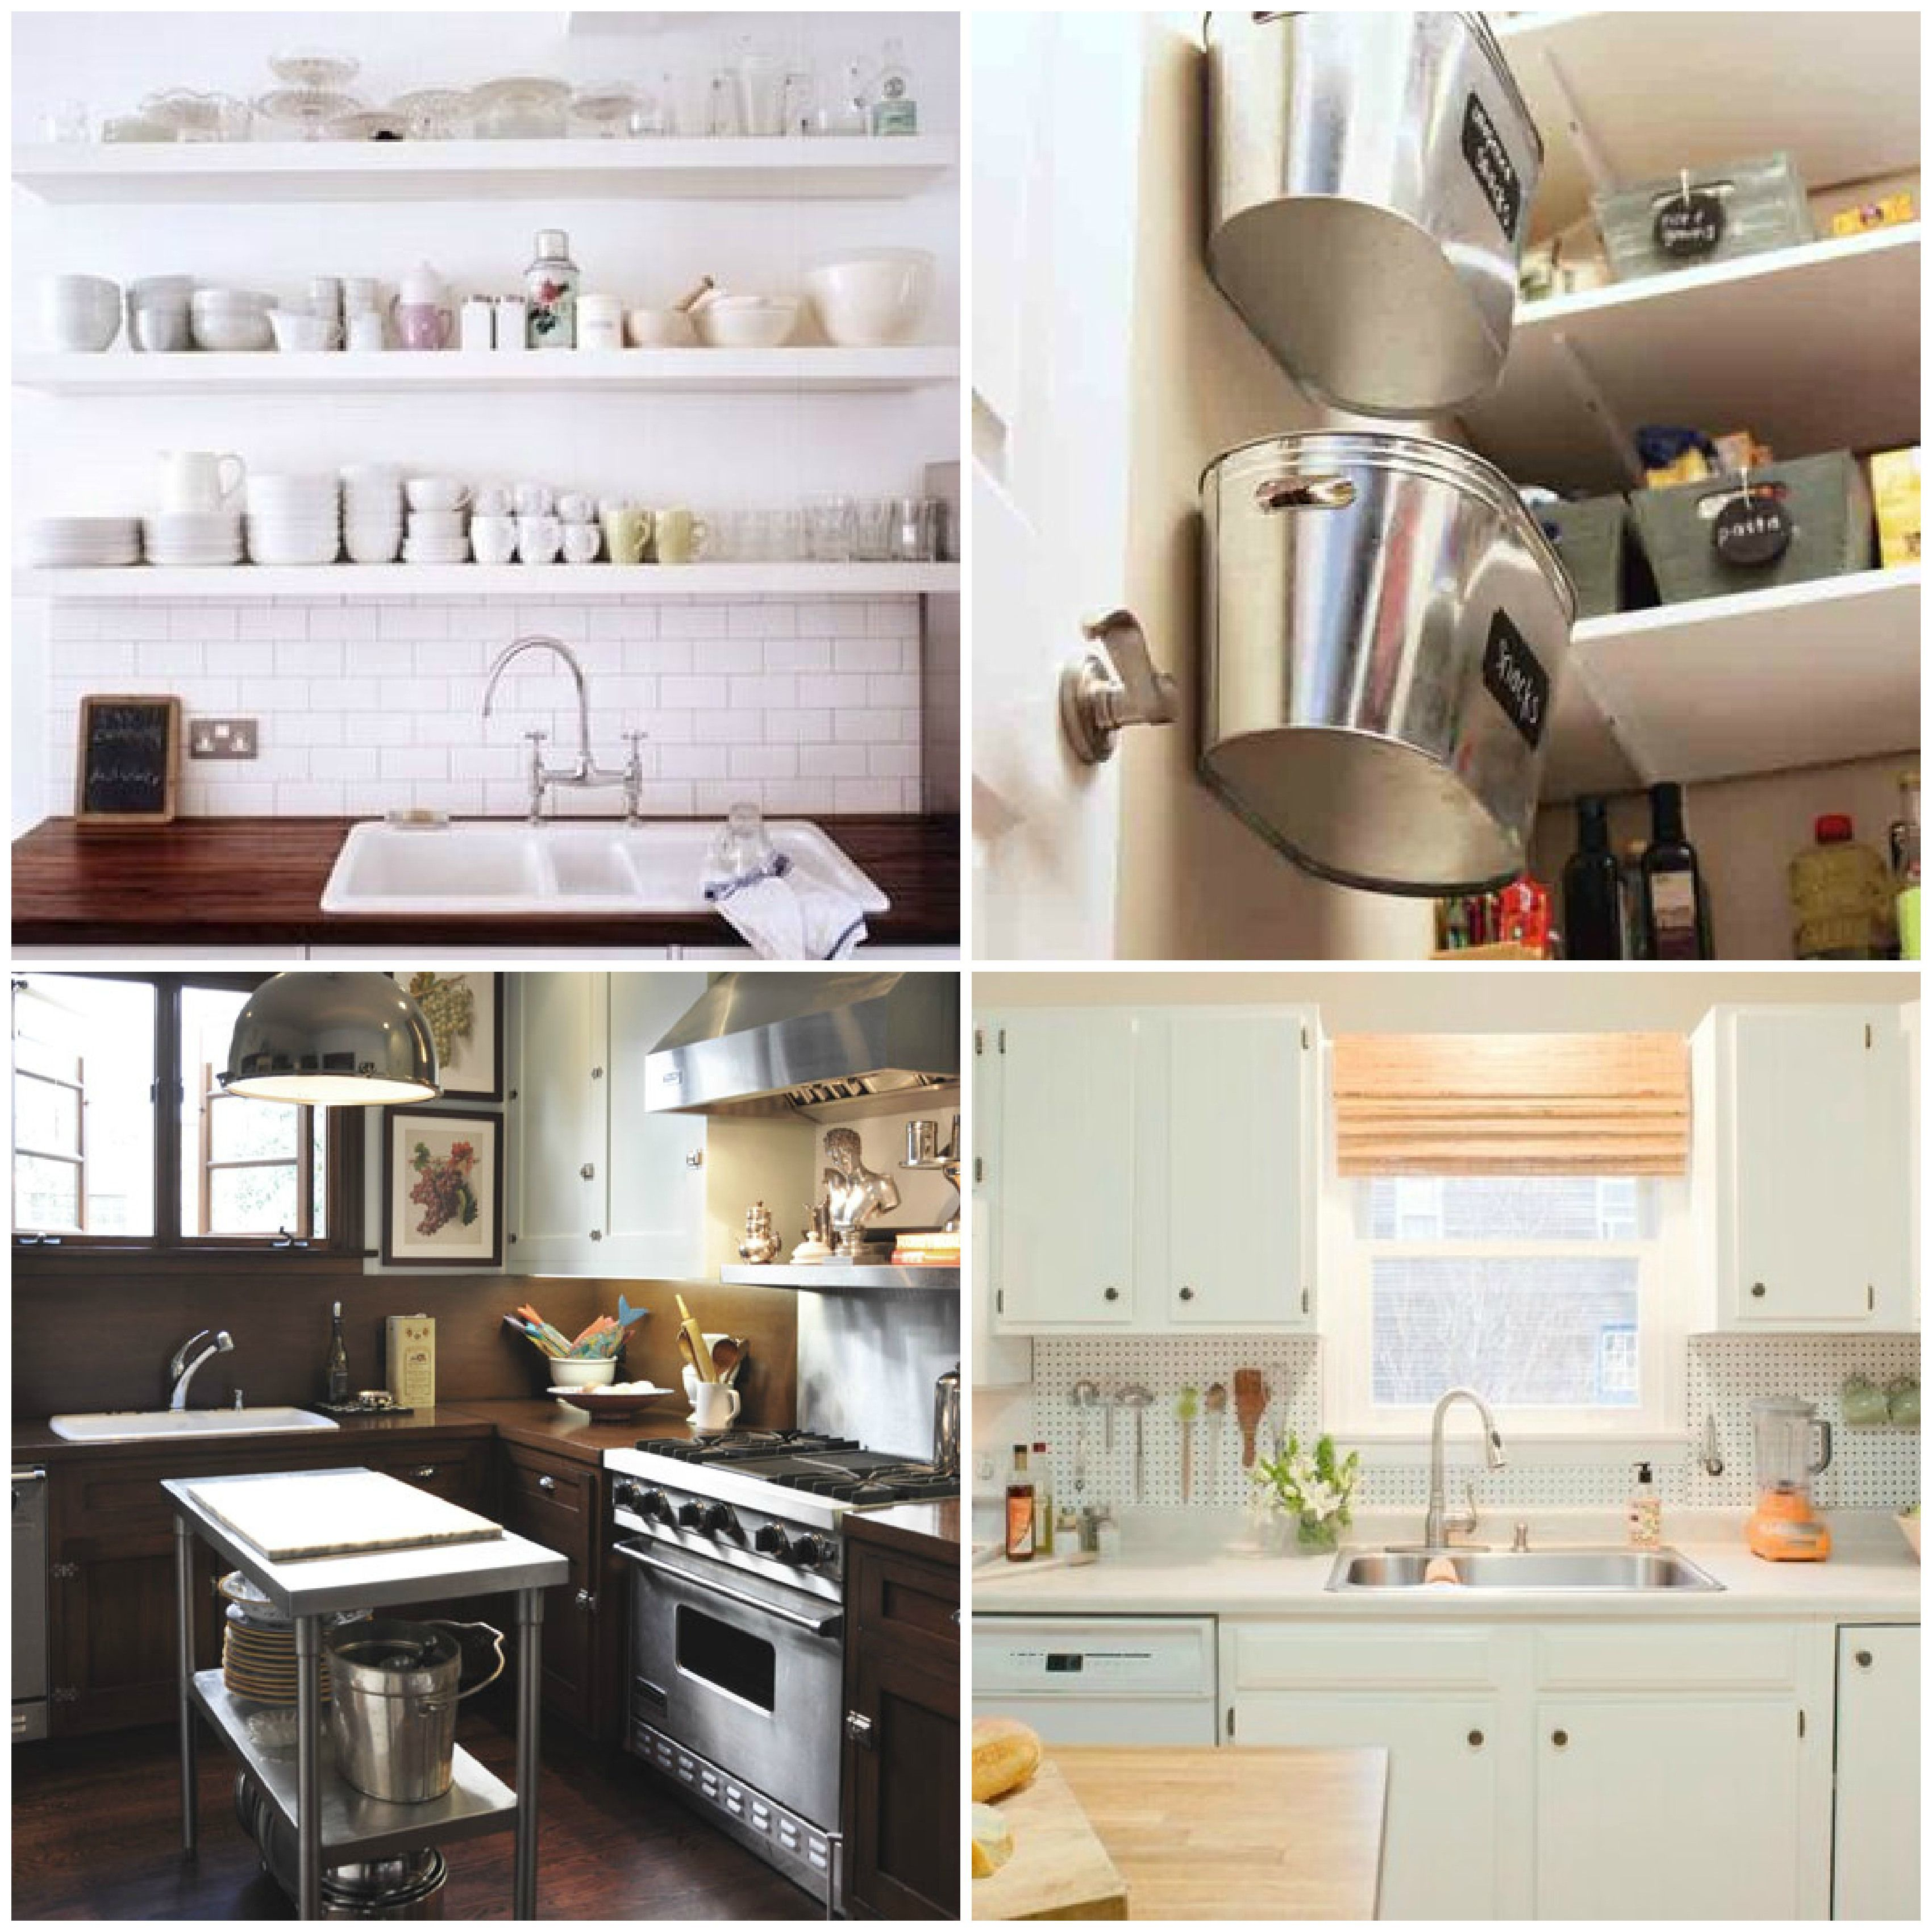 How To Maximize Small Space Living! I LOVE The Tips In Here!